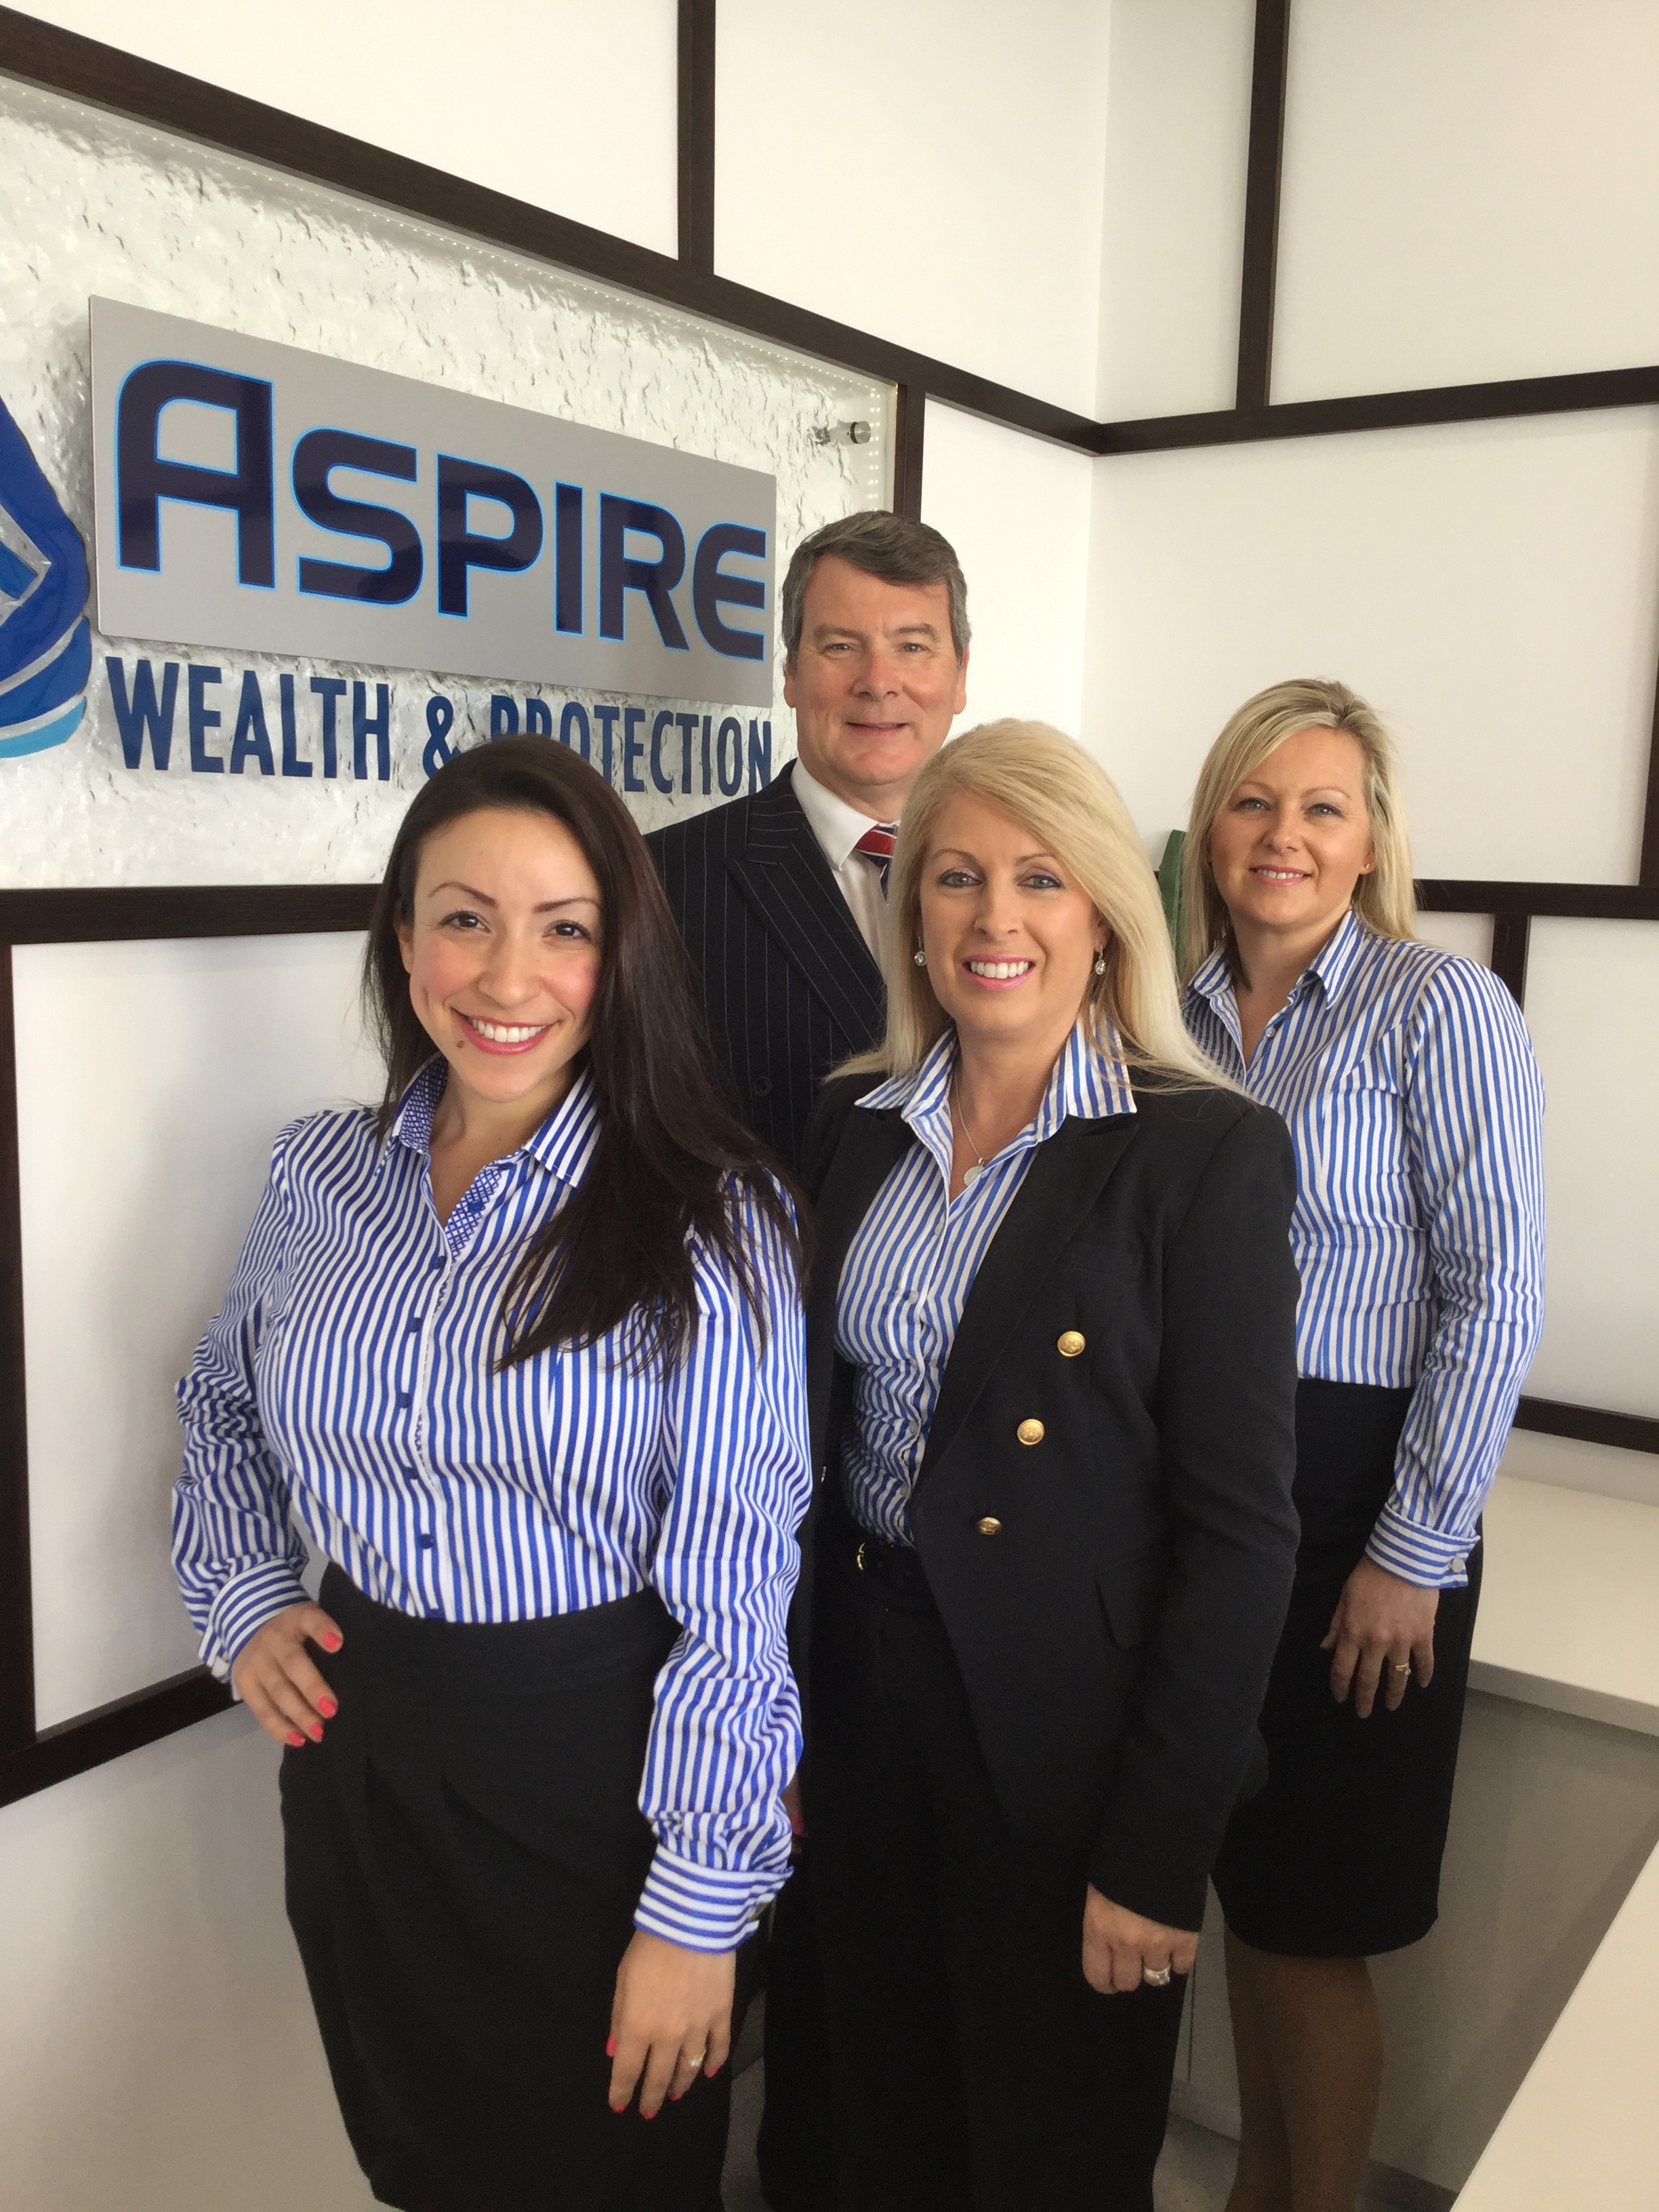 The team at Aspire Wealth and Protection Nelson Bay - Estelle Lopez, Chris Hale, Sue Hale and Michelle Glew.